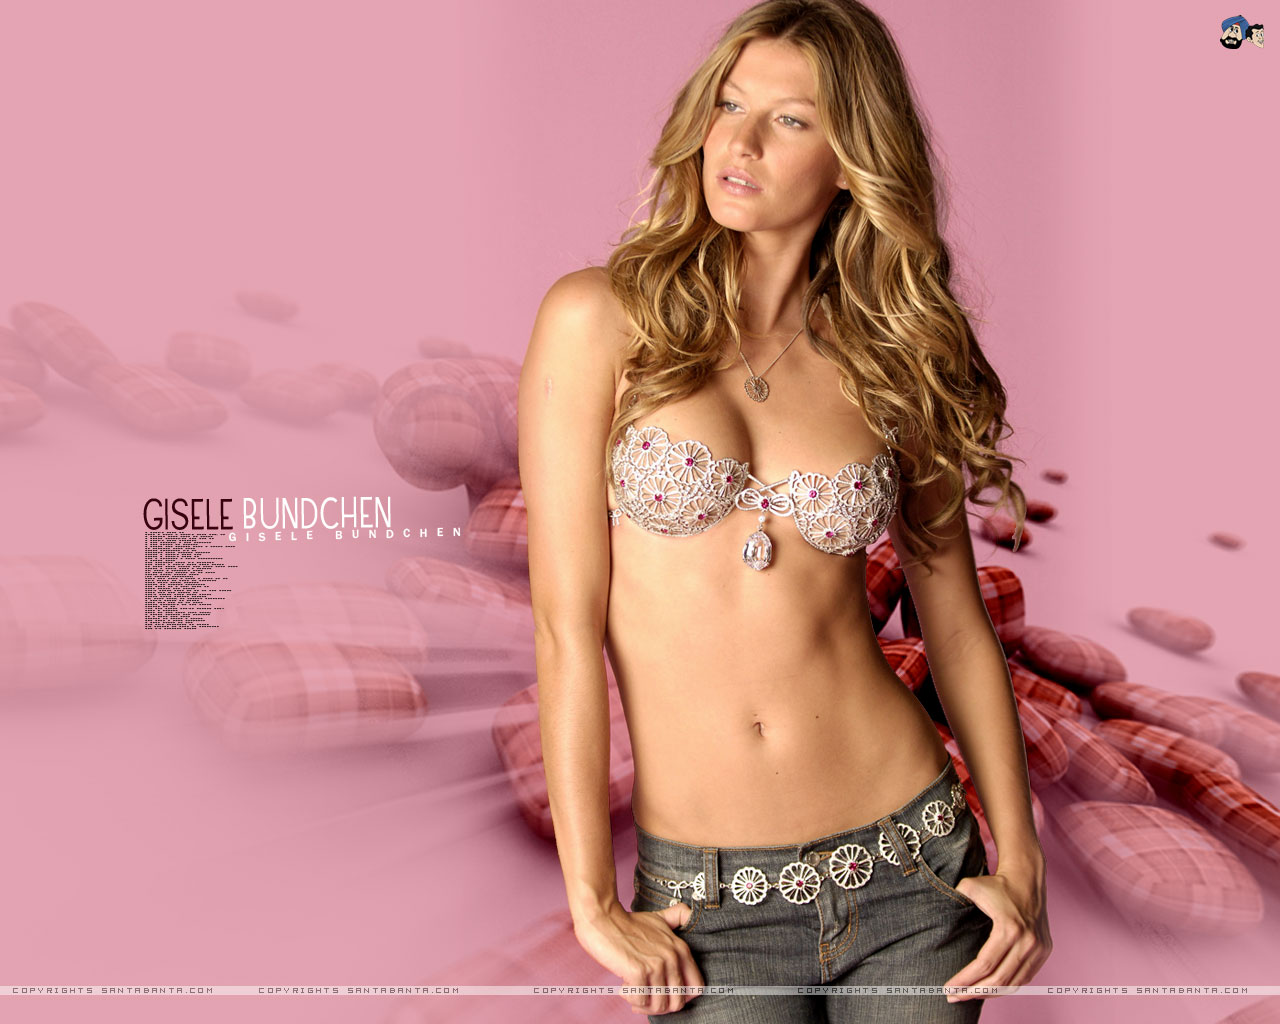 Gisele Bundchen images Gisele Bundchen HD wallpaper and ... Gisele Bundchen